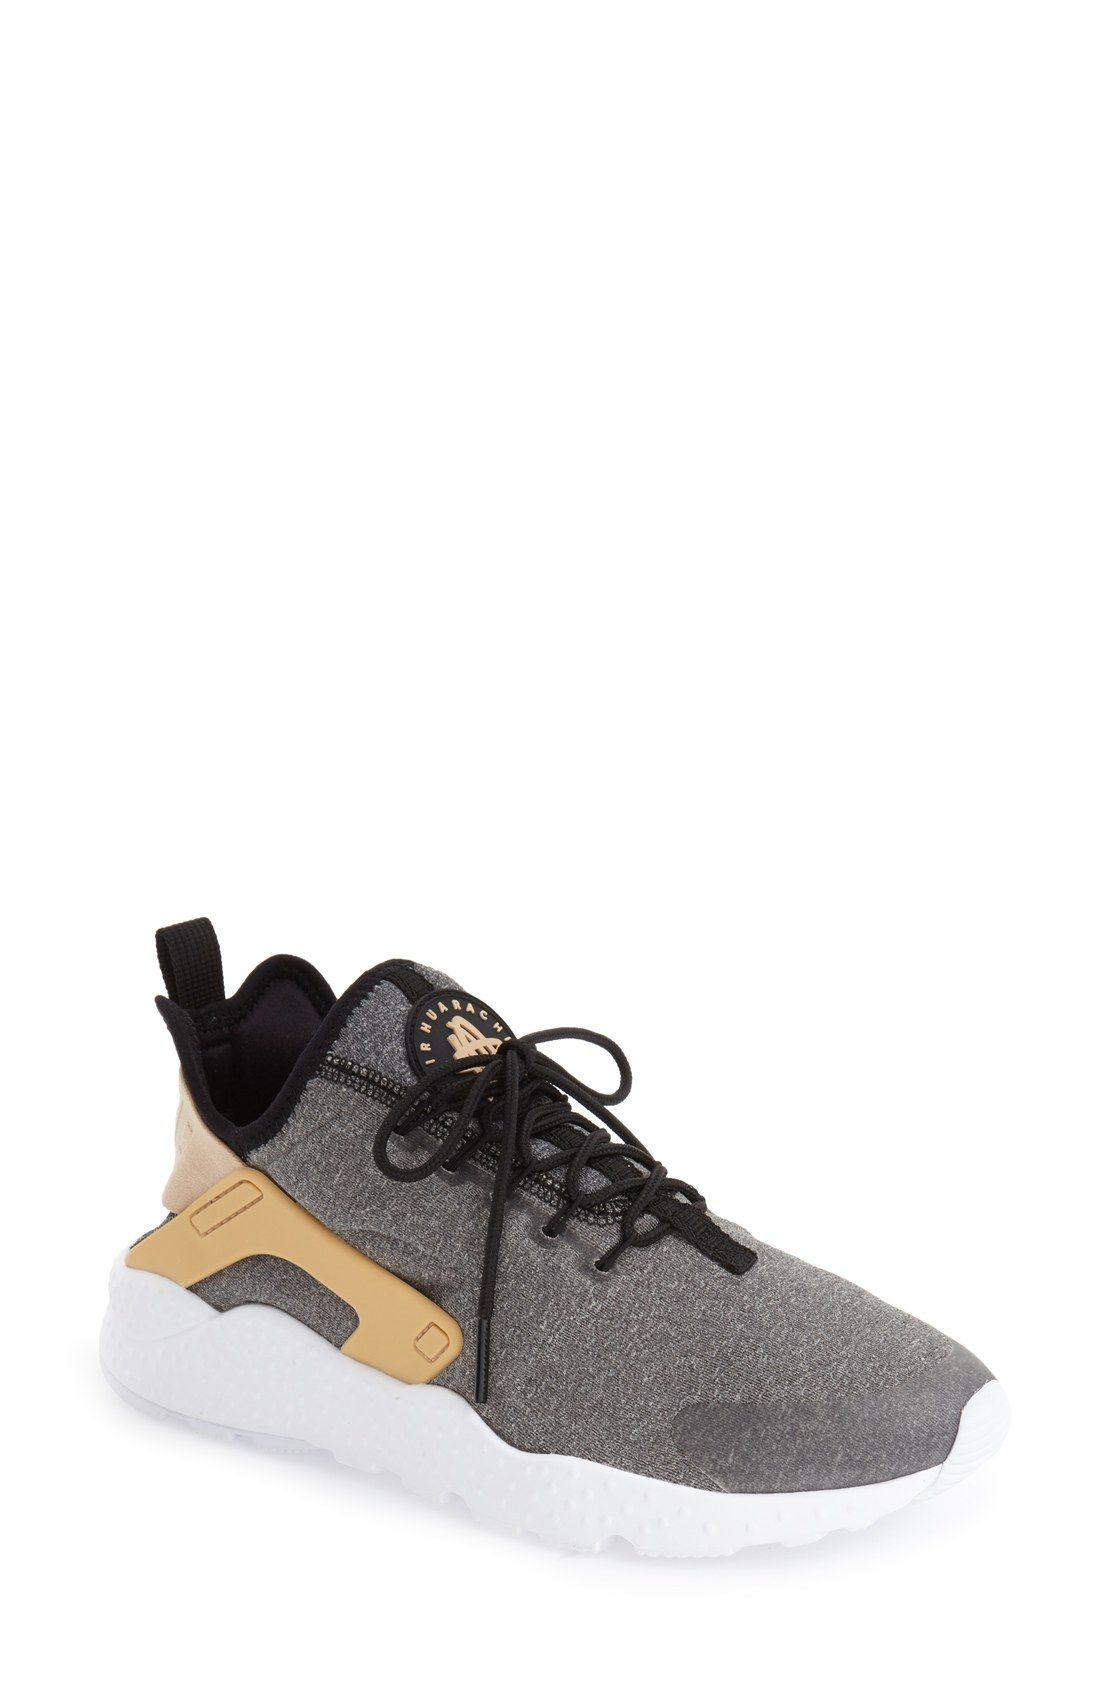 824c199ab4cfb Free shipping and returns on Nike  Air Huarache Run Ultra SE  Sneaker  (Women) at Nordstrom.com. Throw it back to the  90s in this sleek